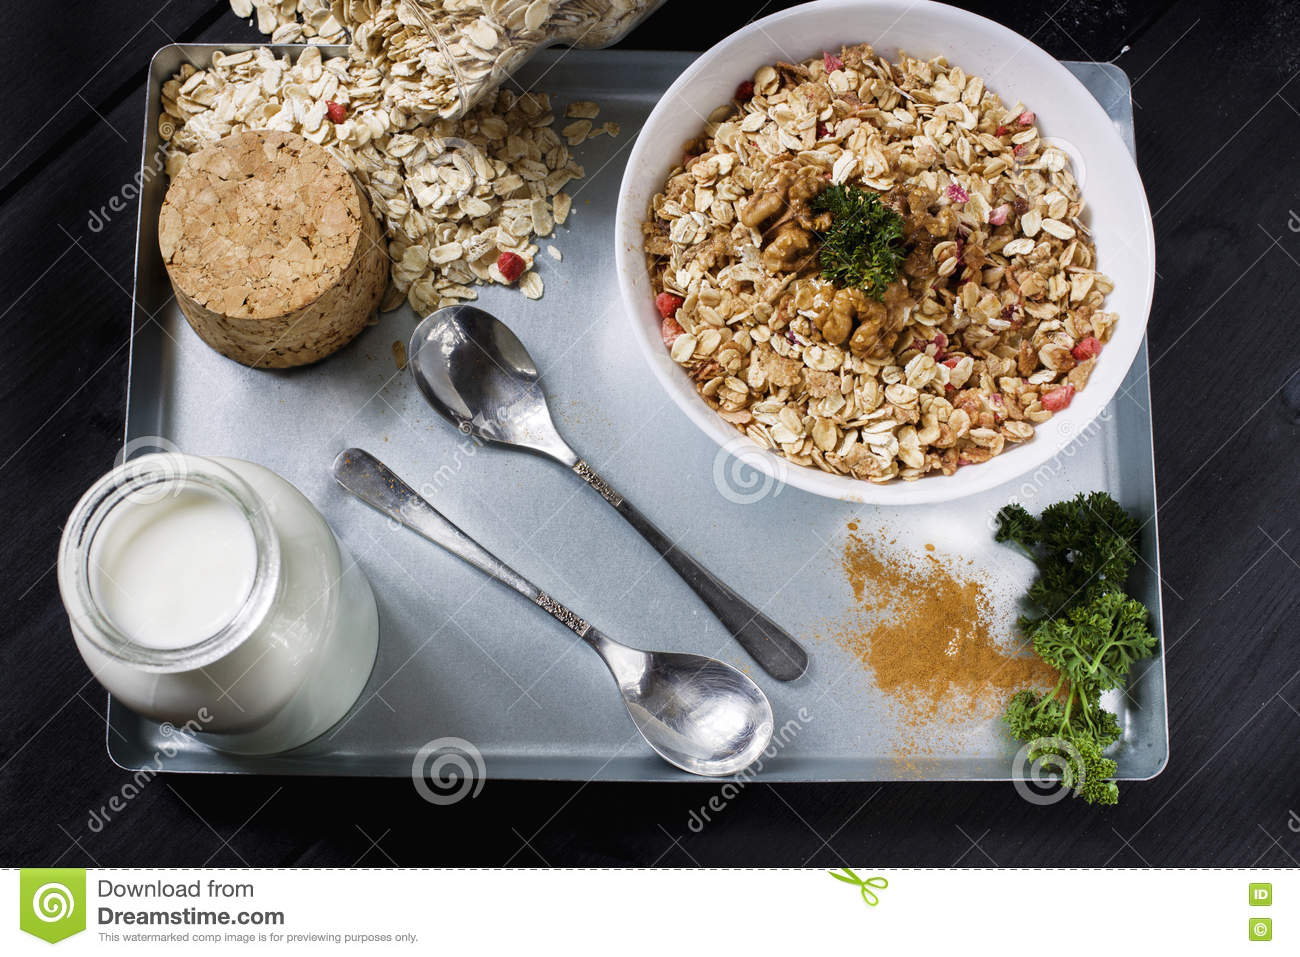 Ingredients for cooking healthy breakfast. Nuts, oat flakes, dried fruits, honey, granola, wooden heart in a white bowl.